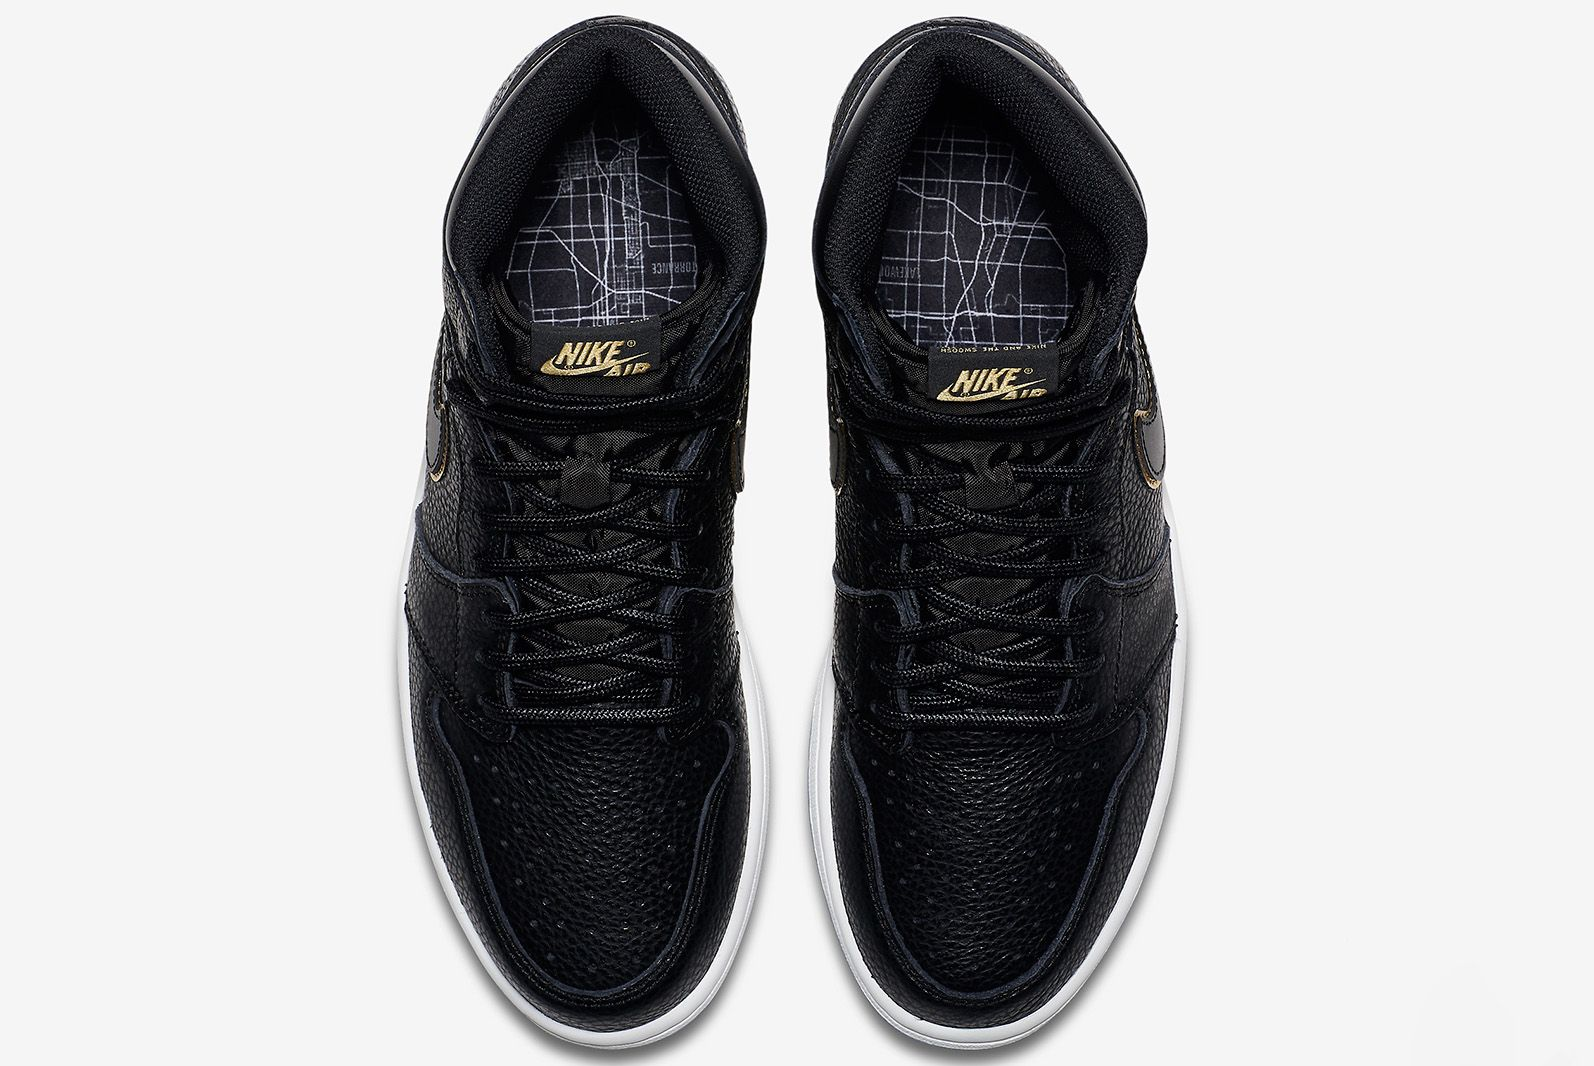 Air Jordan 1 Tumbled Leather Blackgold 6